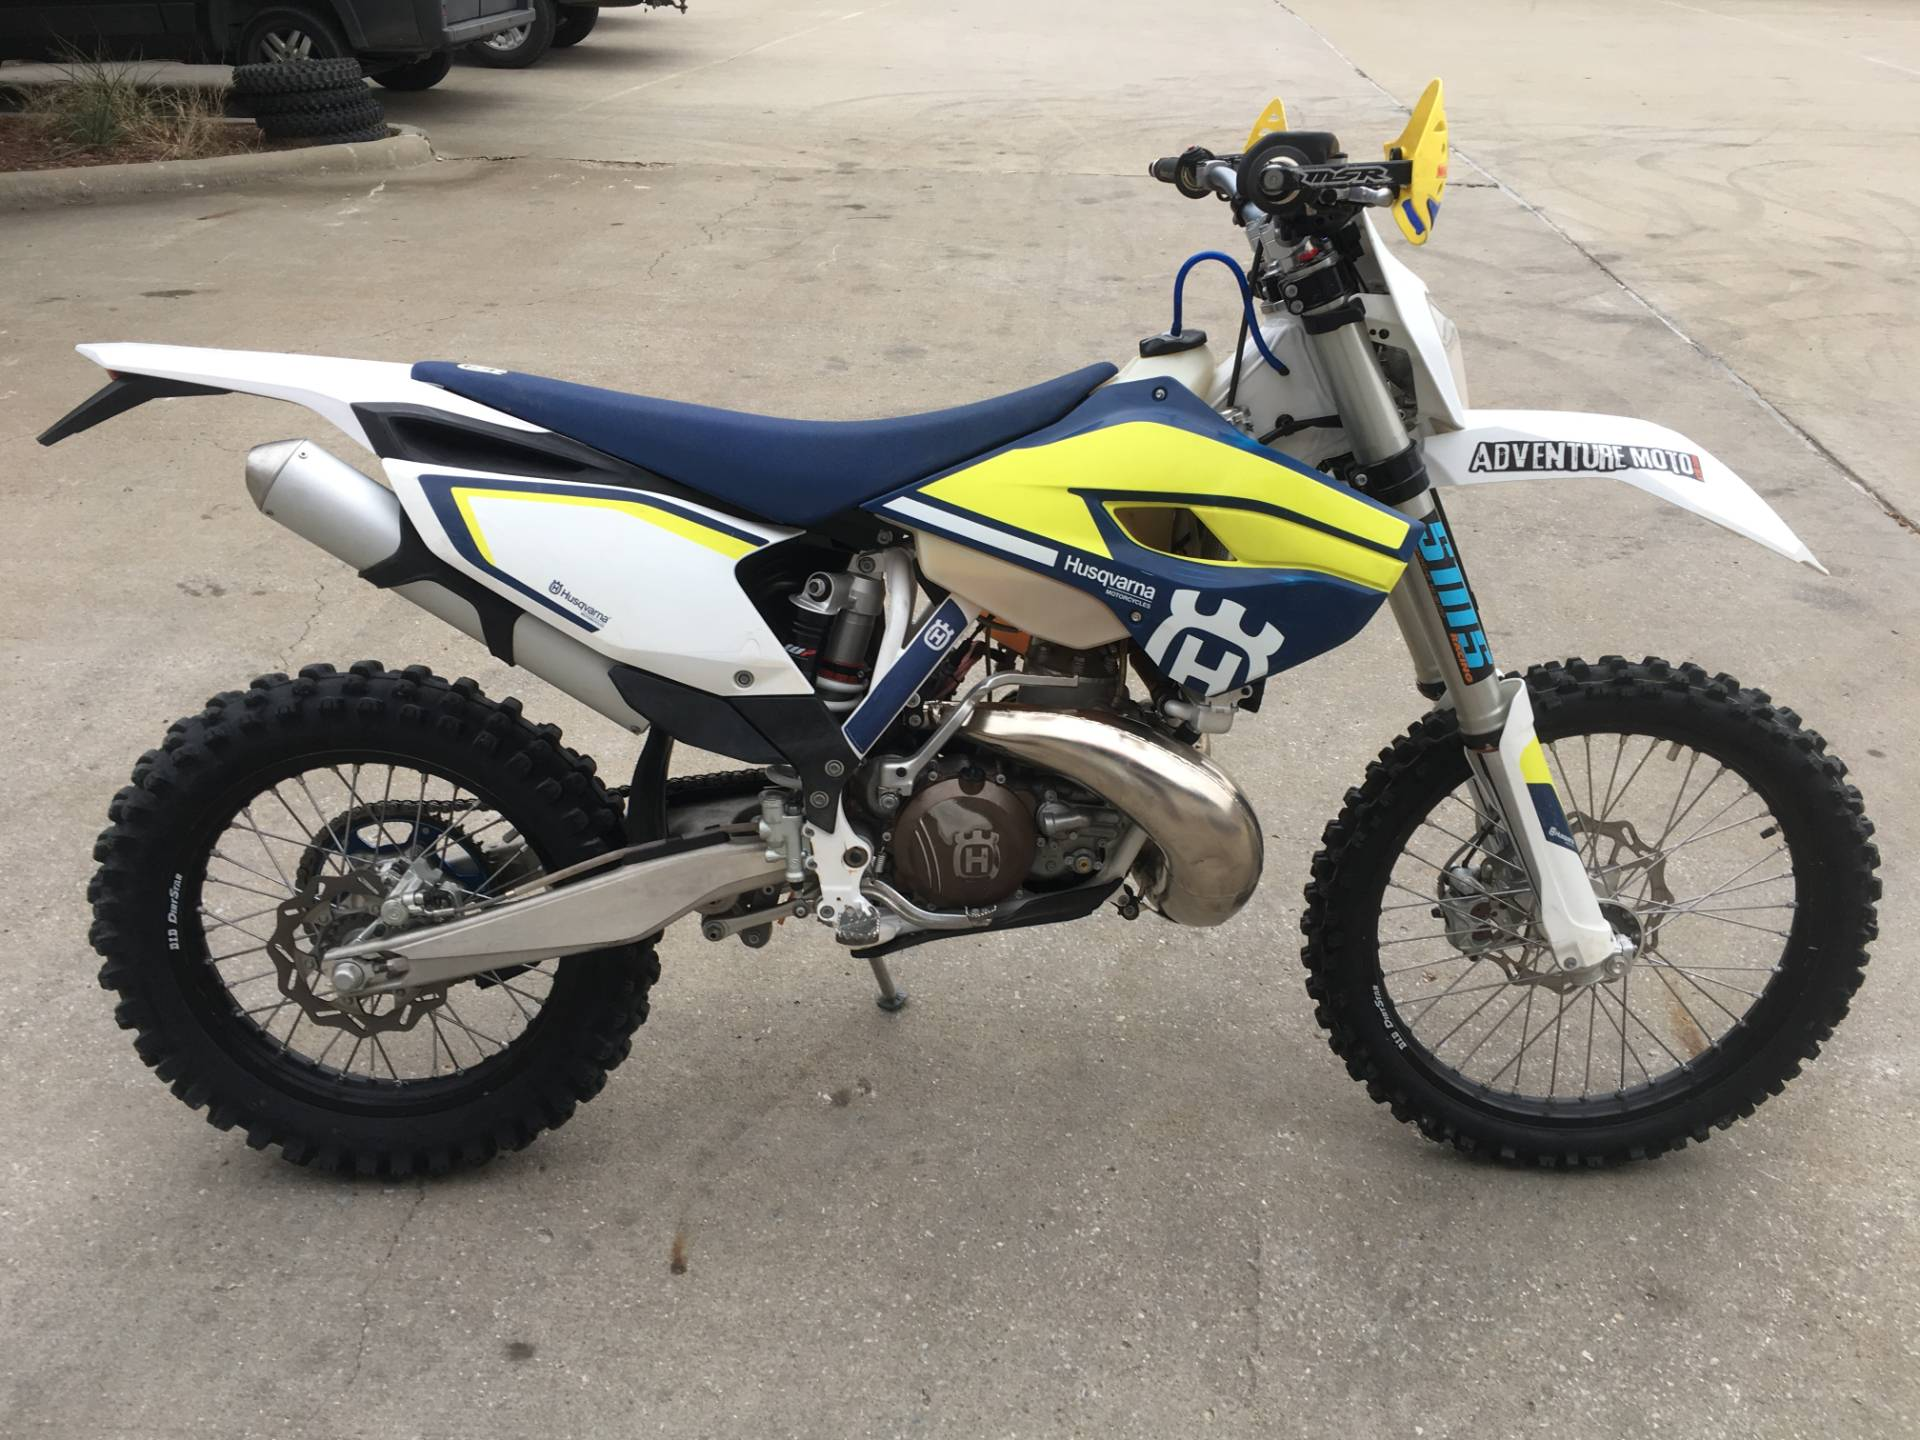 2016 Husqvarna TE 300 in Denton, Texas